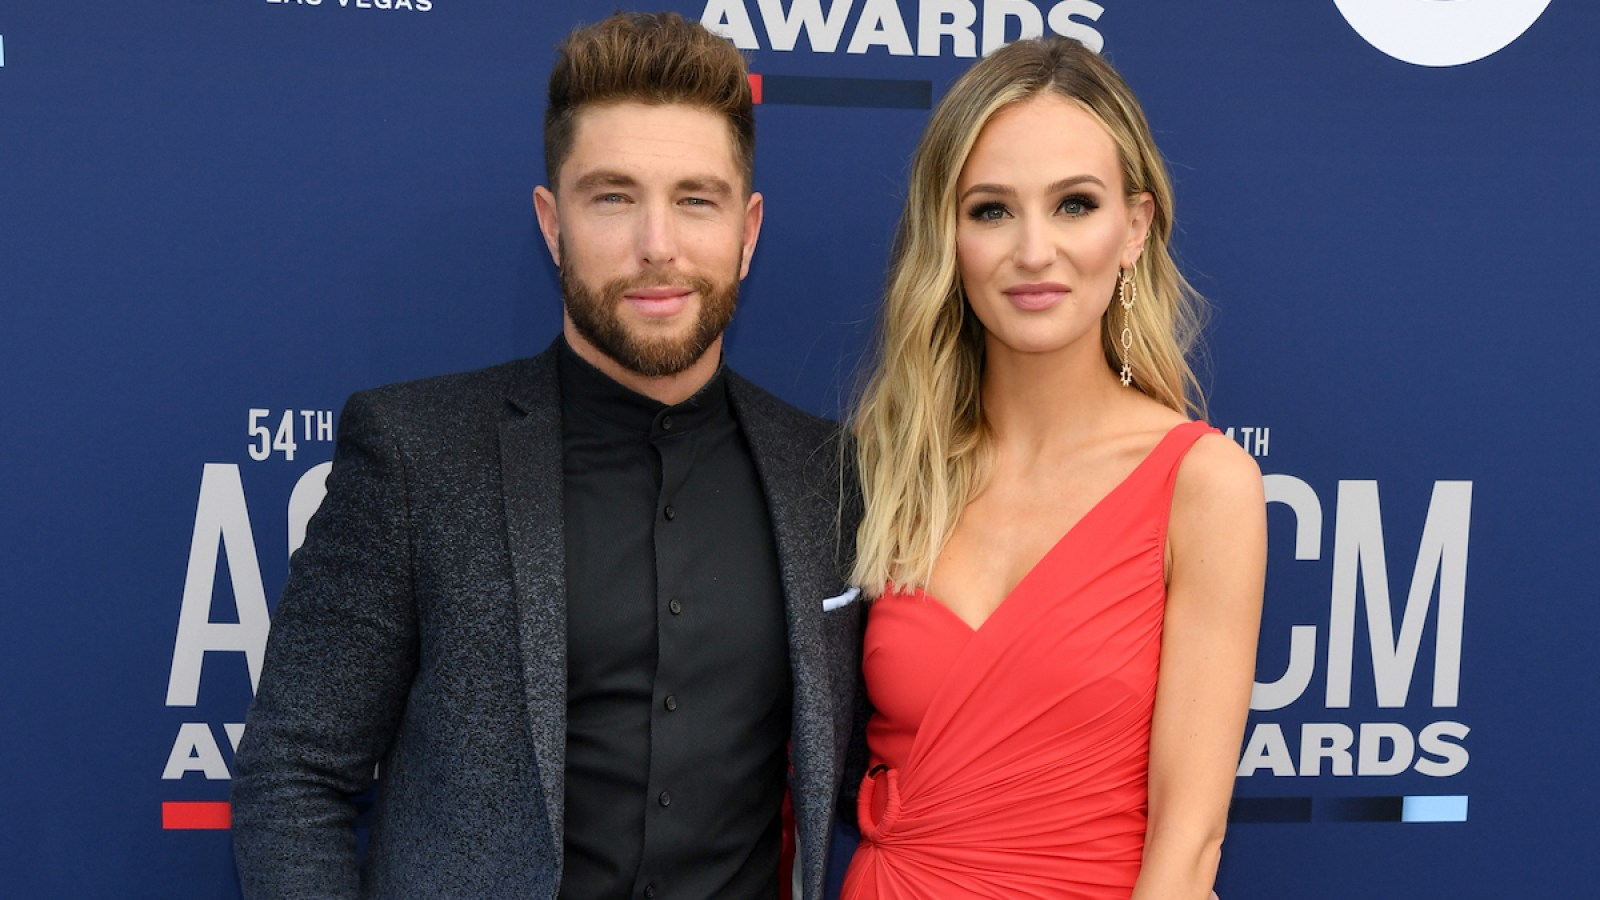 befeee3e2245 Chris Lane and Lauren Bushnell Kiss on the Red Carpet at the ACMs As He  Says He's 'Working On' a Proposal